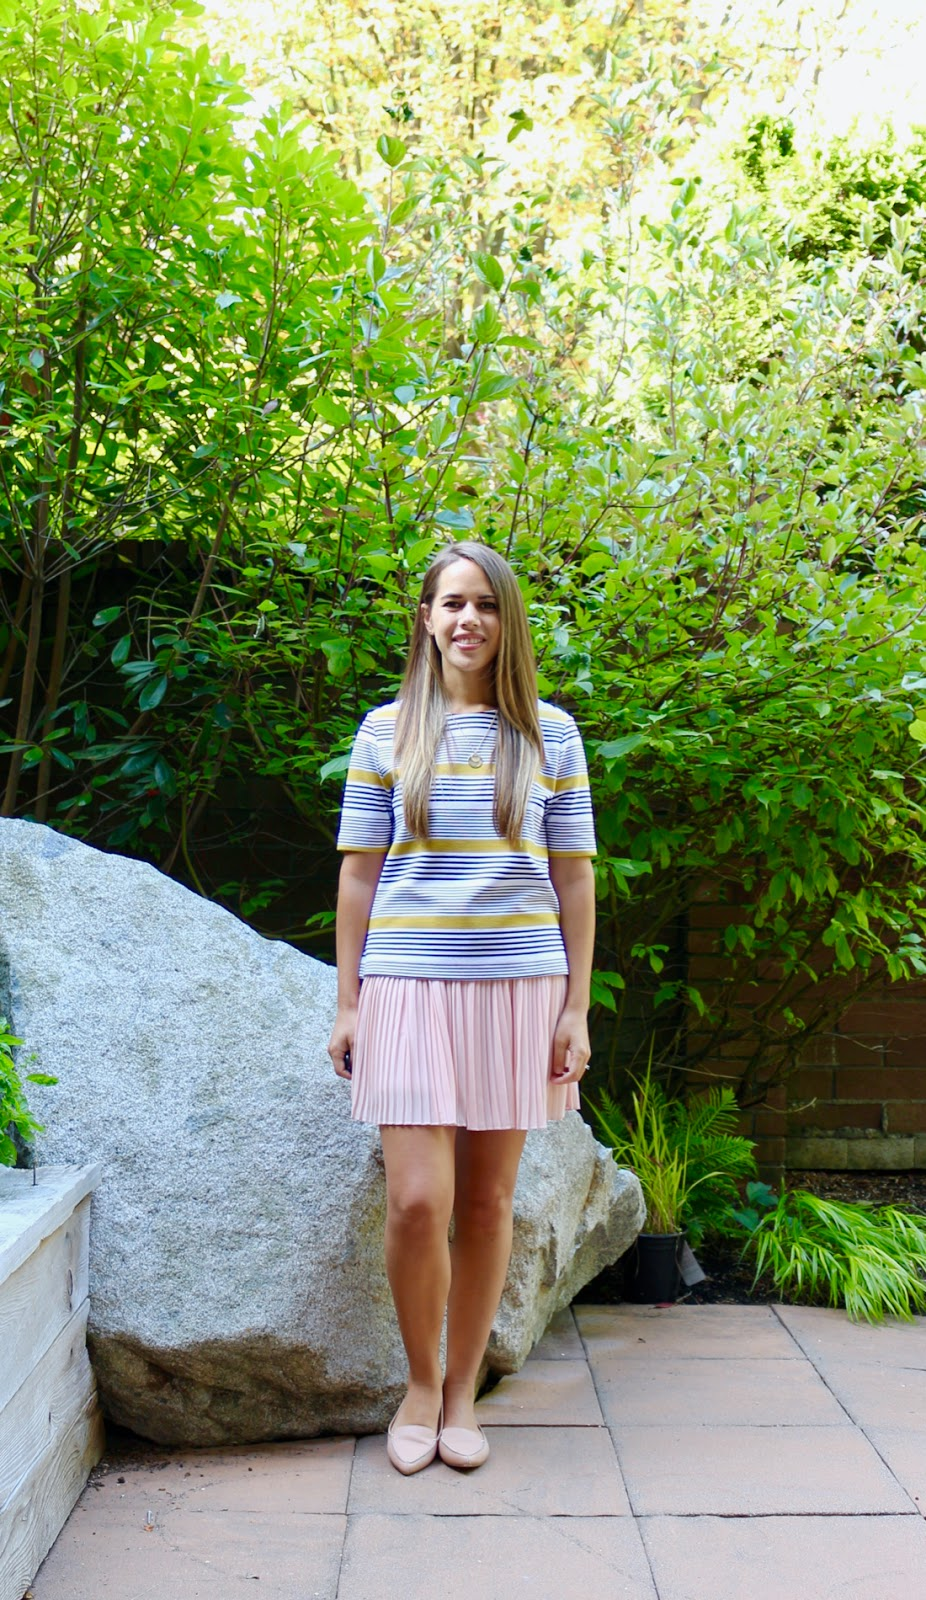 Jules in Flats - Boxy Striped Top with Pleated Mini Skirt (Business Casual Spring Workwear on a Budget)